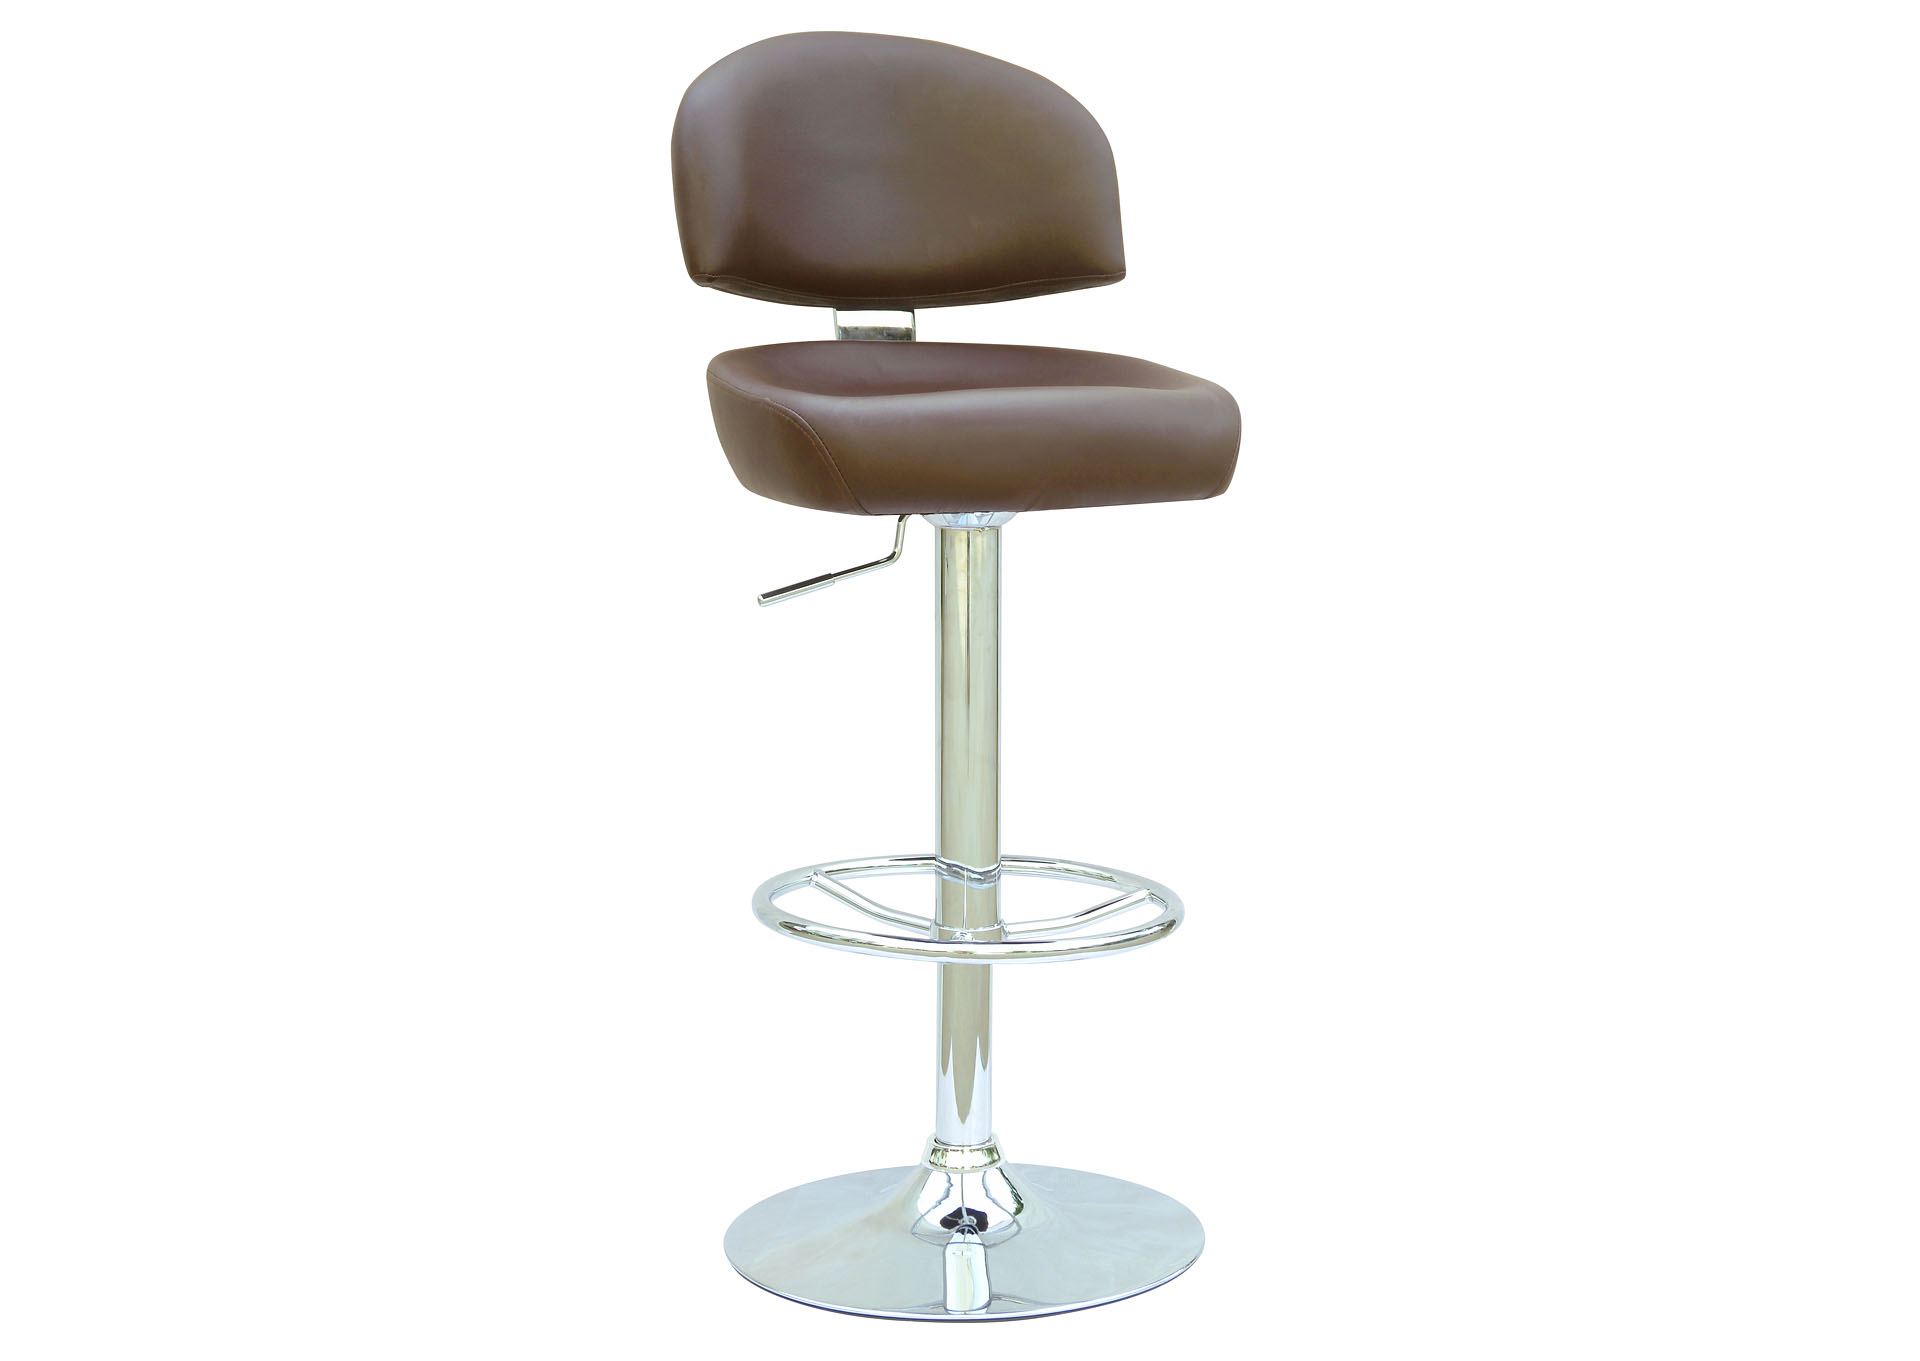 Brown Pneumatic Gas Lift Adjustable Height Swivel Stool,Chintaly Imports